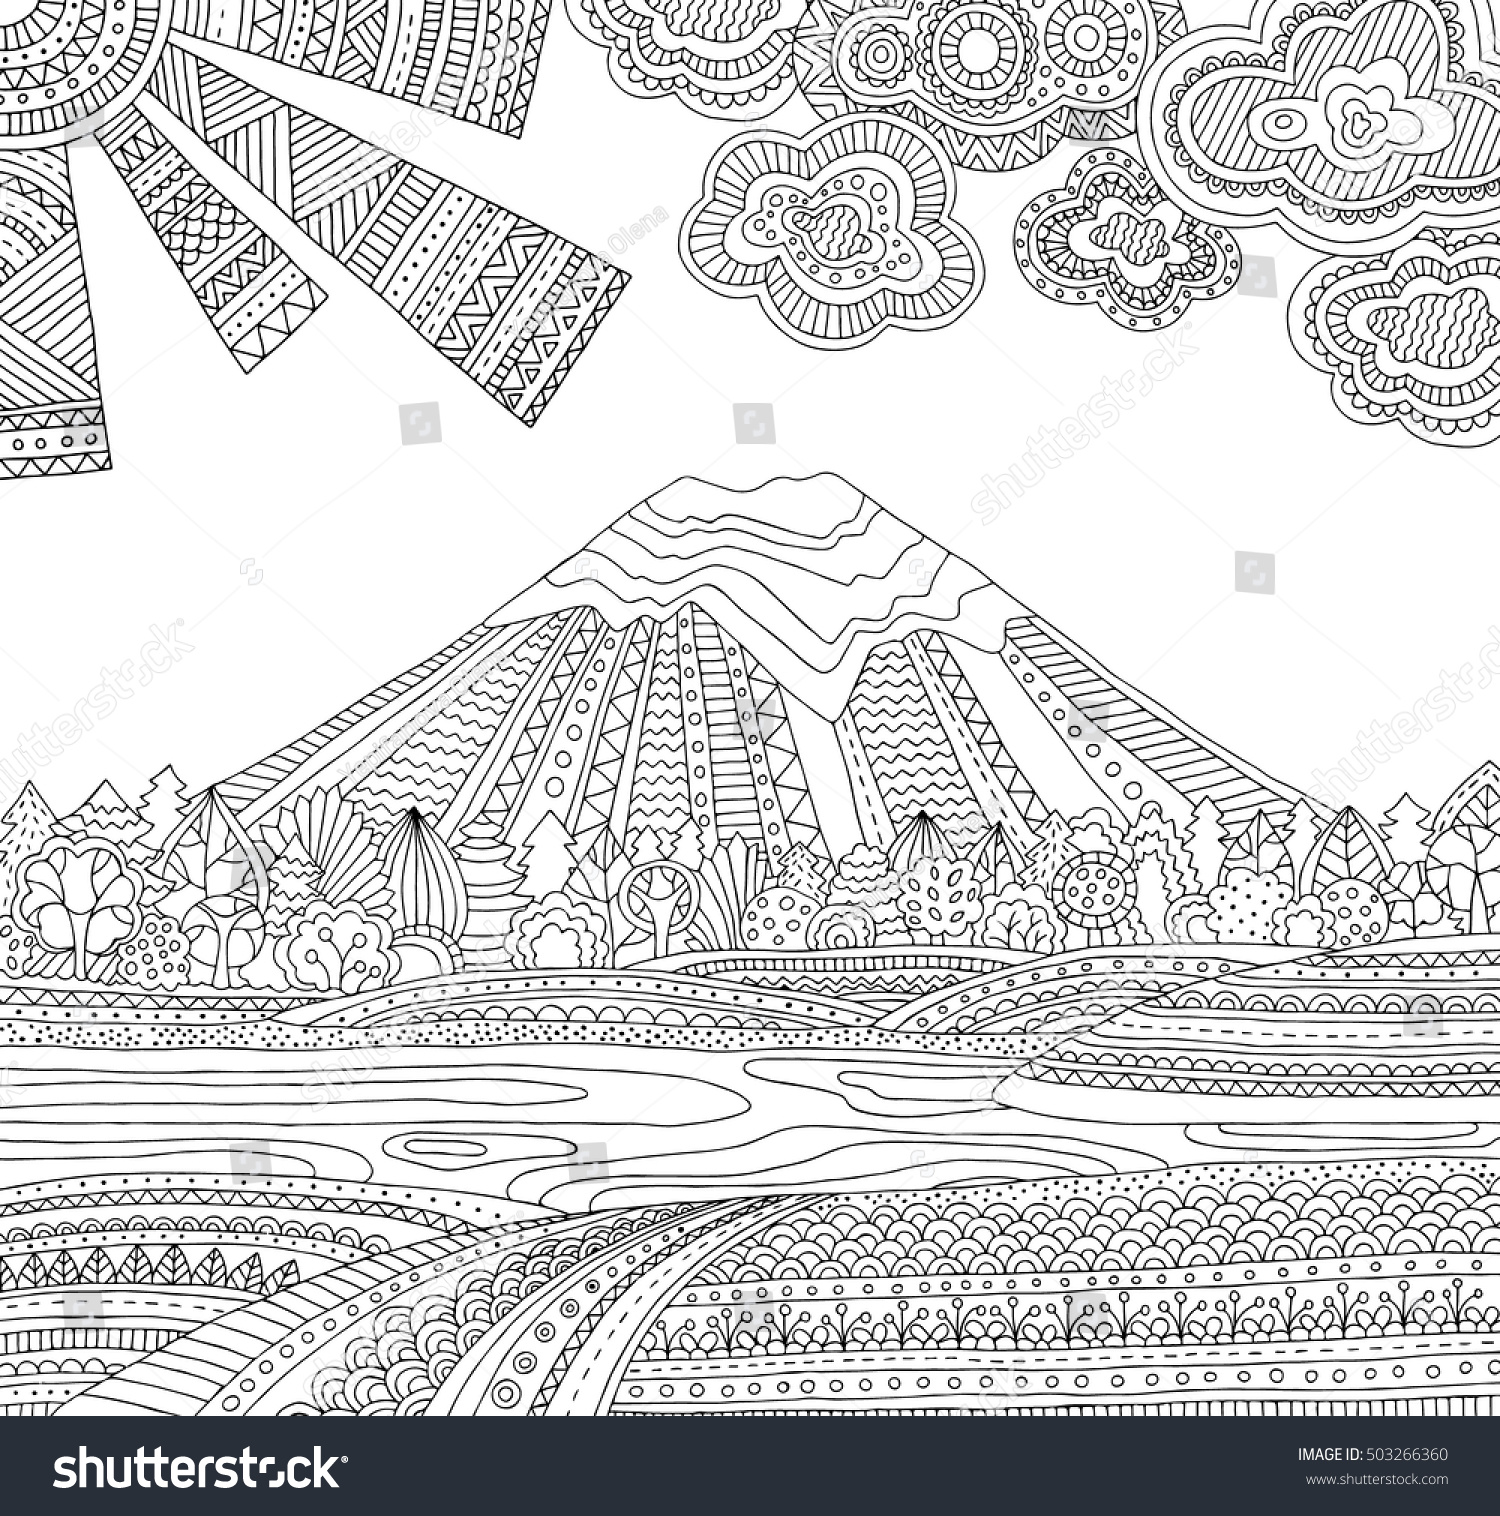 Printable Coloring Page For Adults With Mountain Landscape